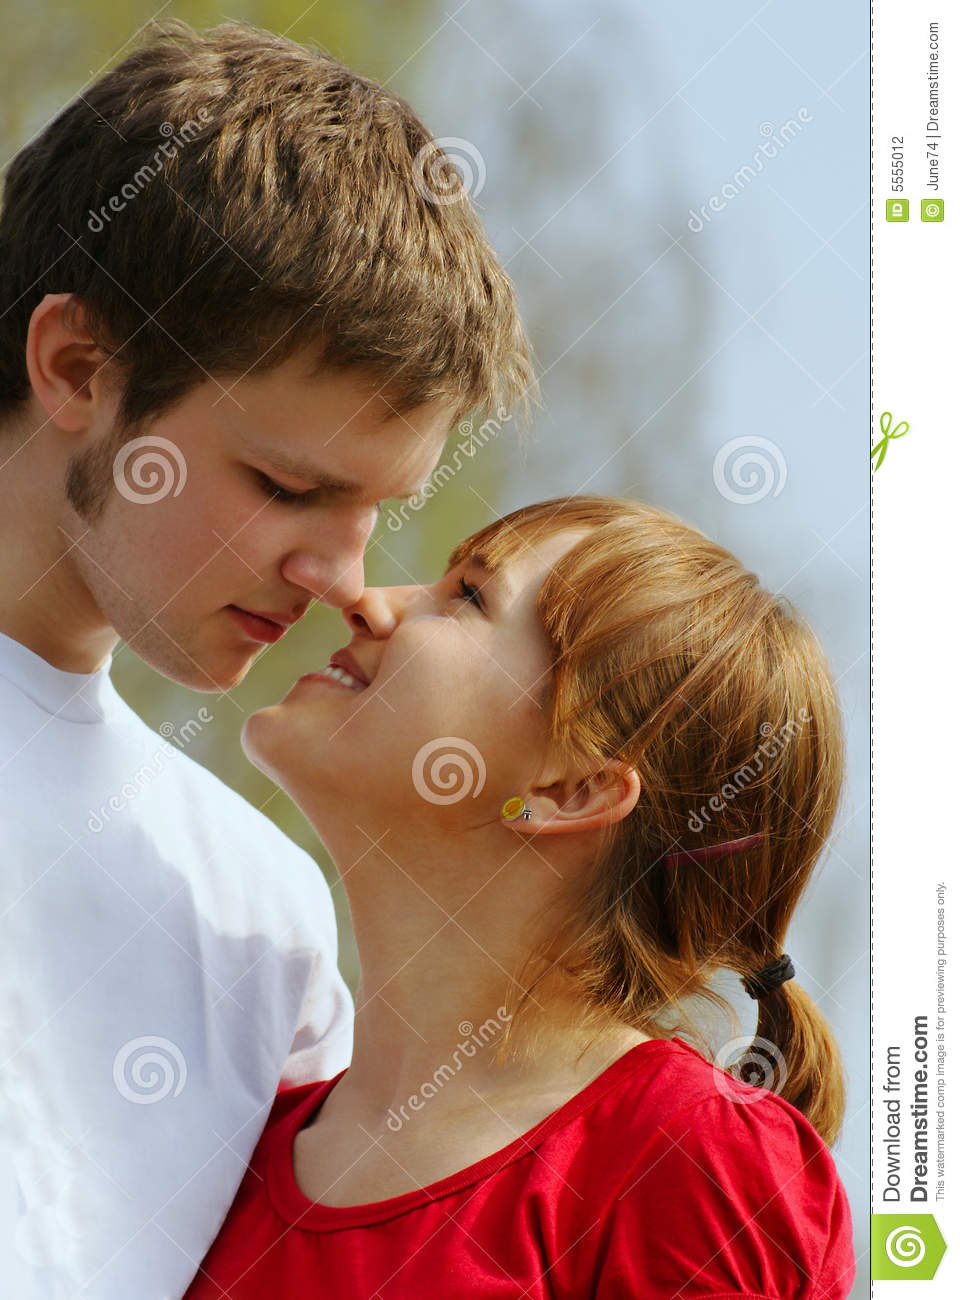 First Love Stock Photography - Image 5555012-9047